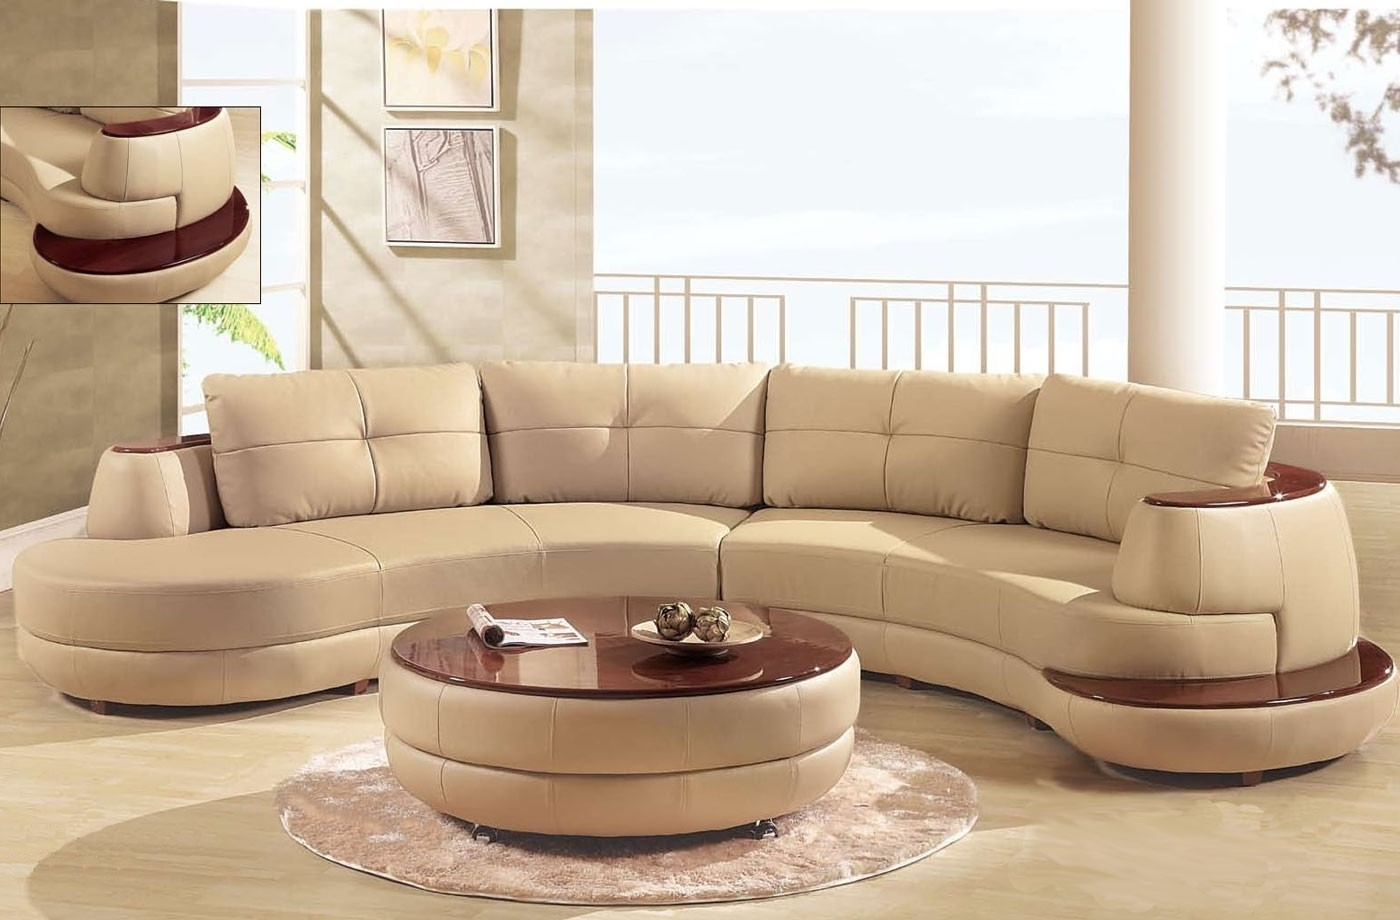 Sectional Sofas Under 200 Throughout Well Known Cheap Sofas Under 200 – Mforum (View 8 of 20)